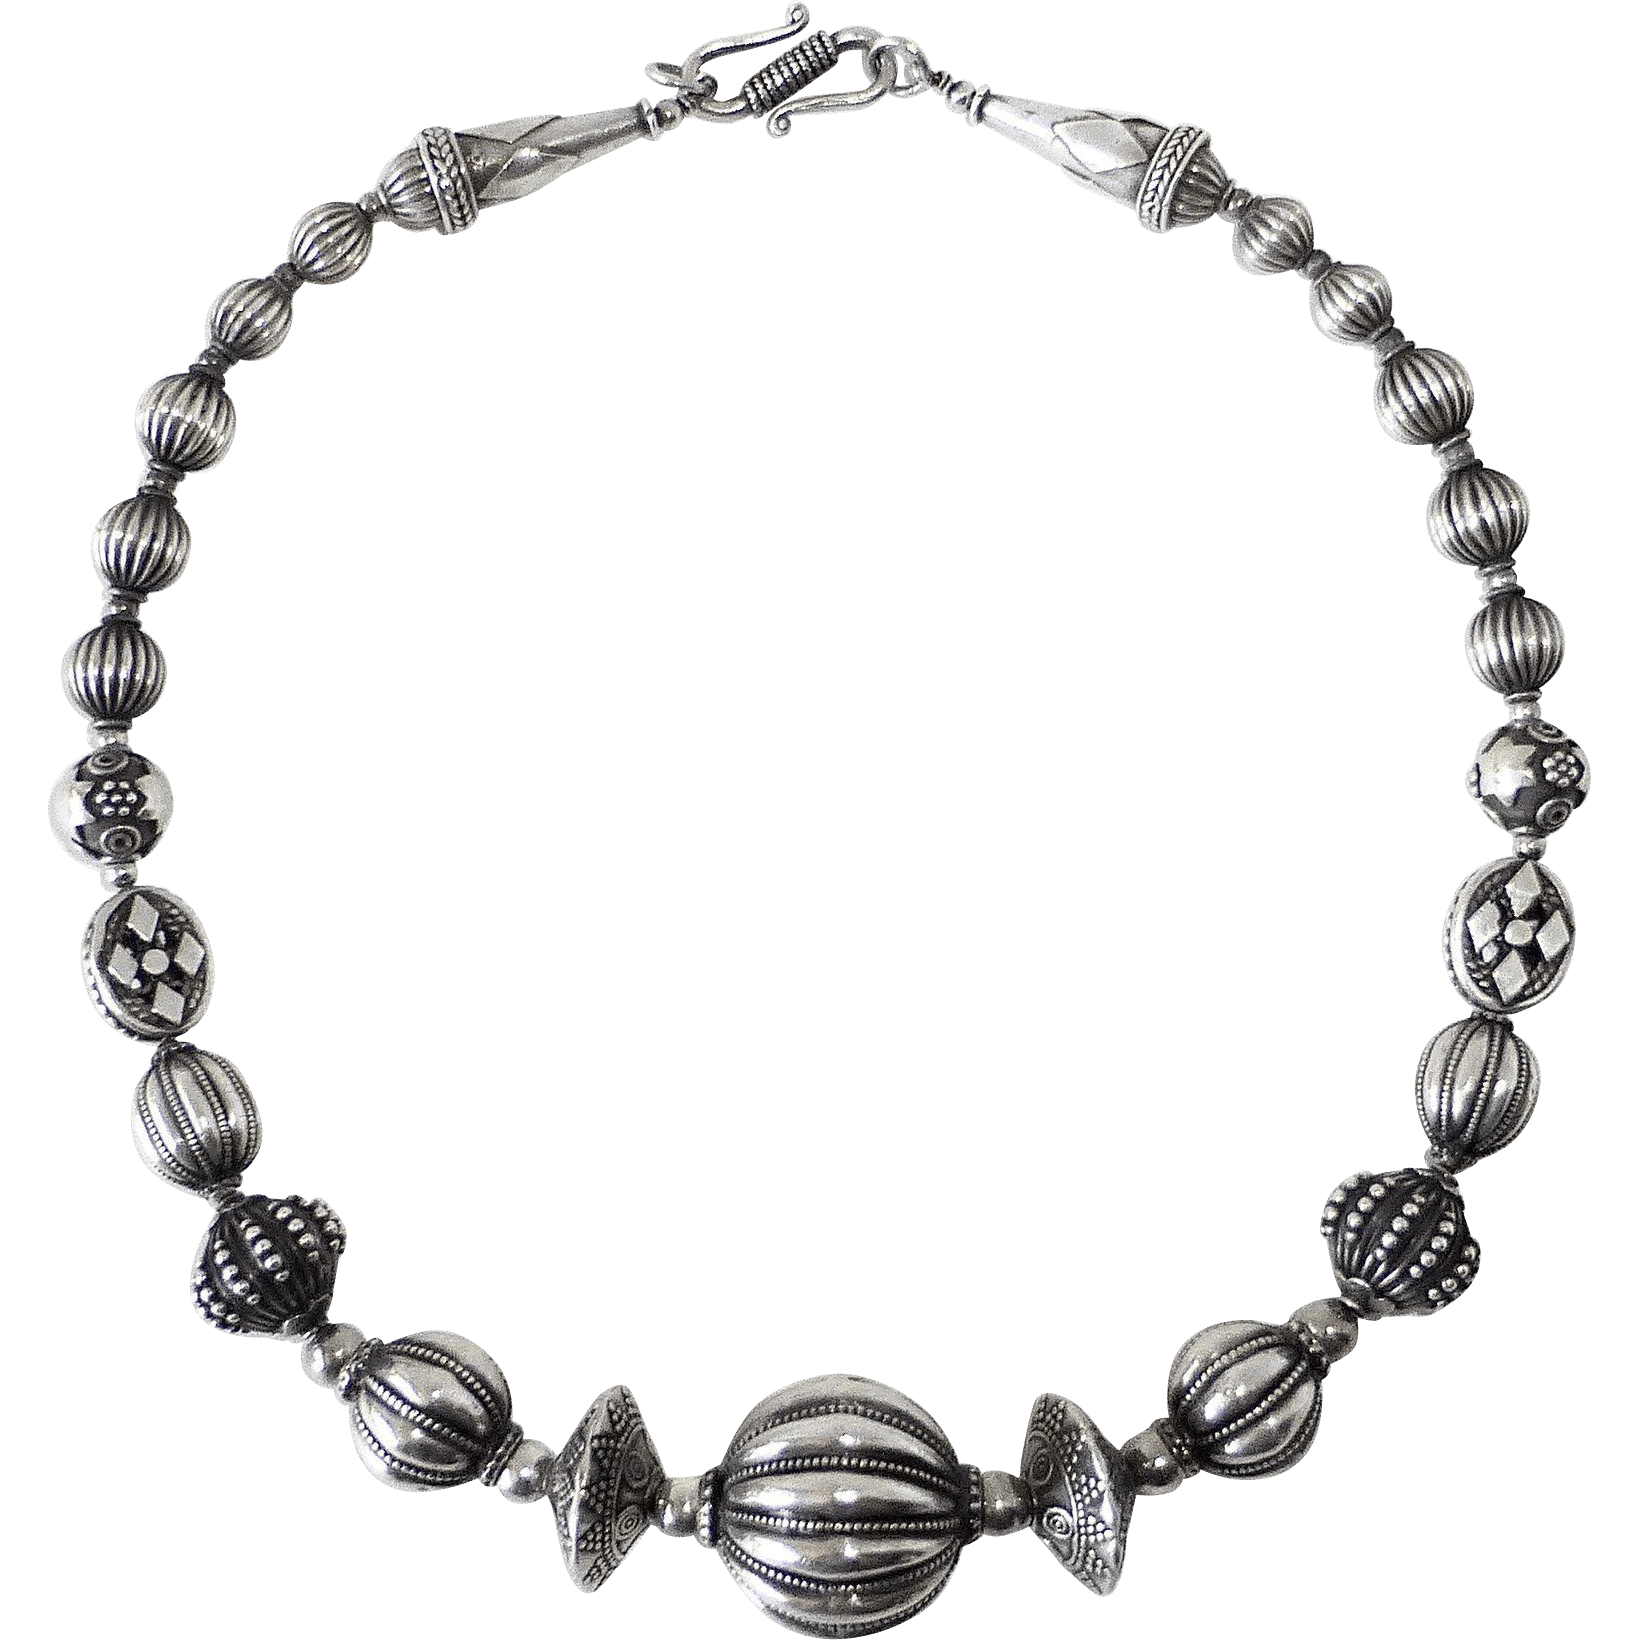 Ethnic Sterling Silver Exotic Beaded Necklace From